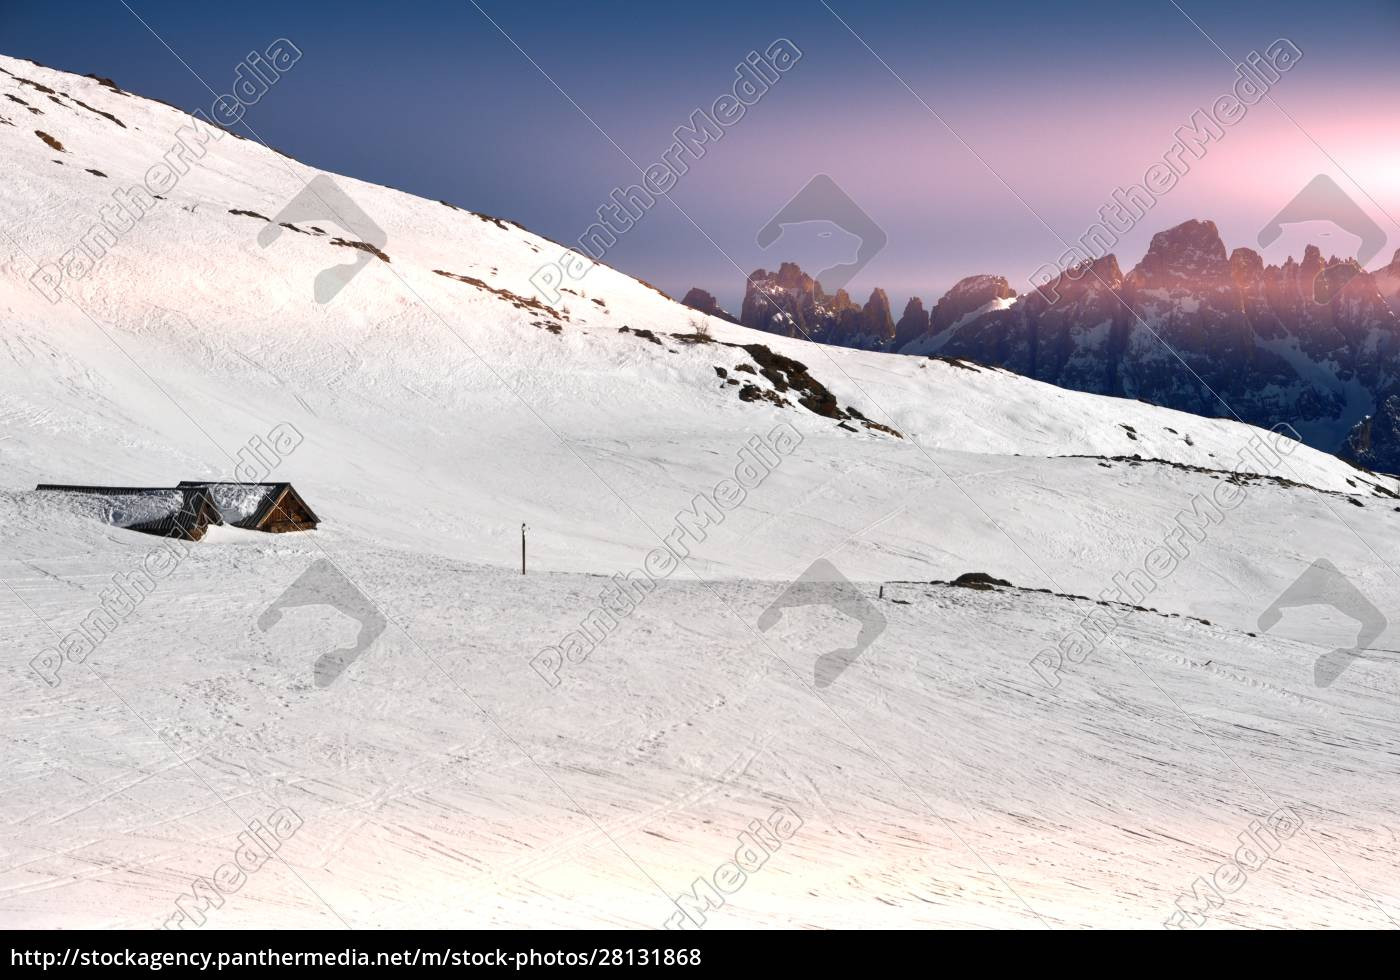 skiing, insouthern, tyrol - 28131868